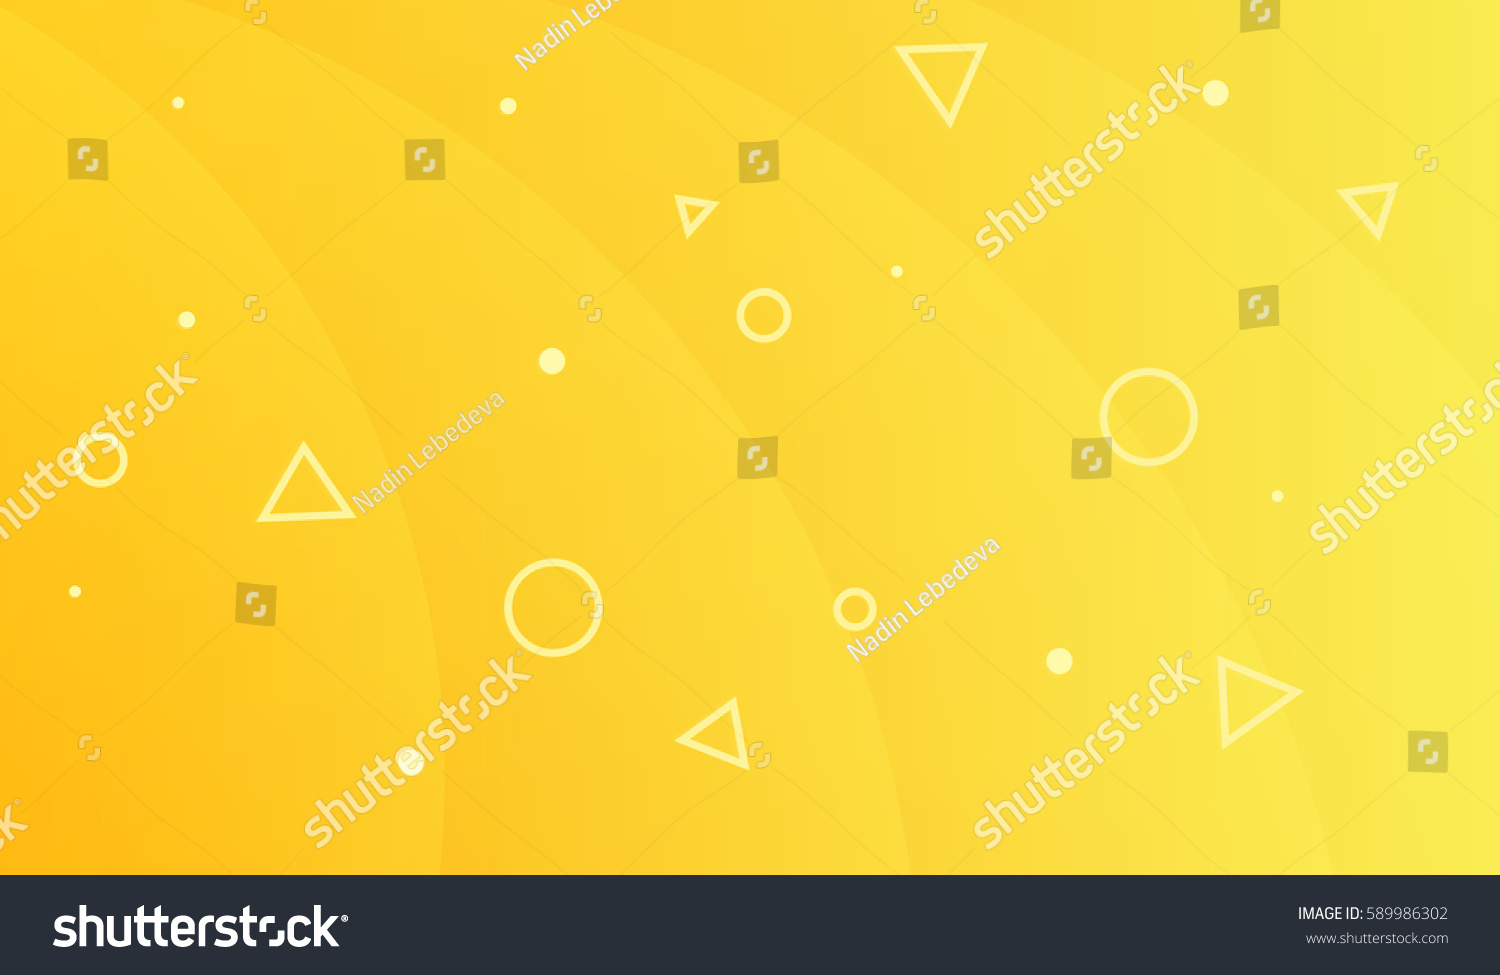 vector eps 10 yellow background design stock vector royalty free